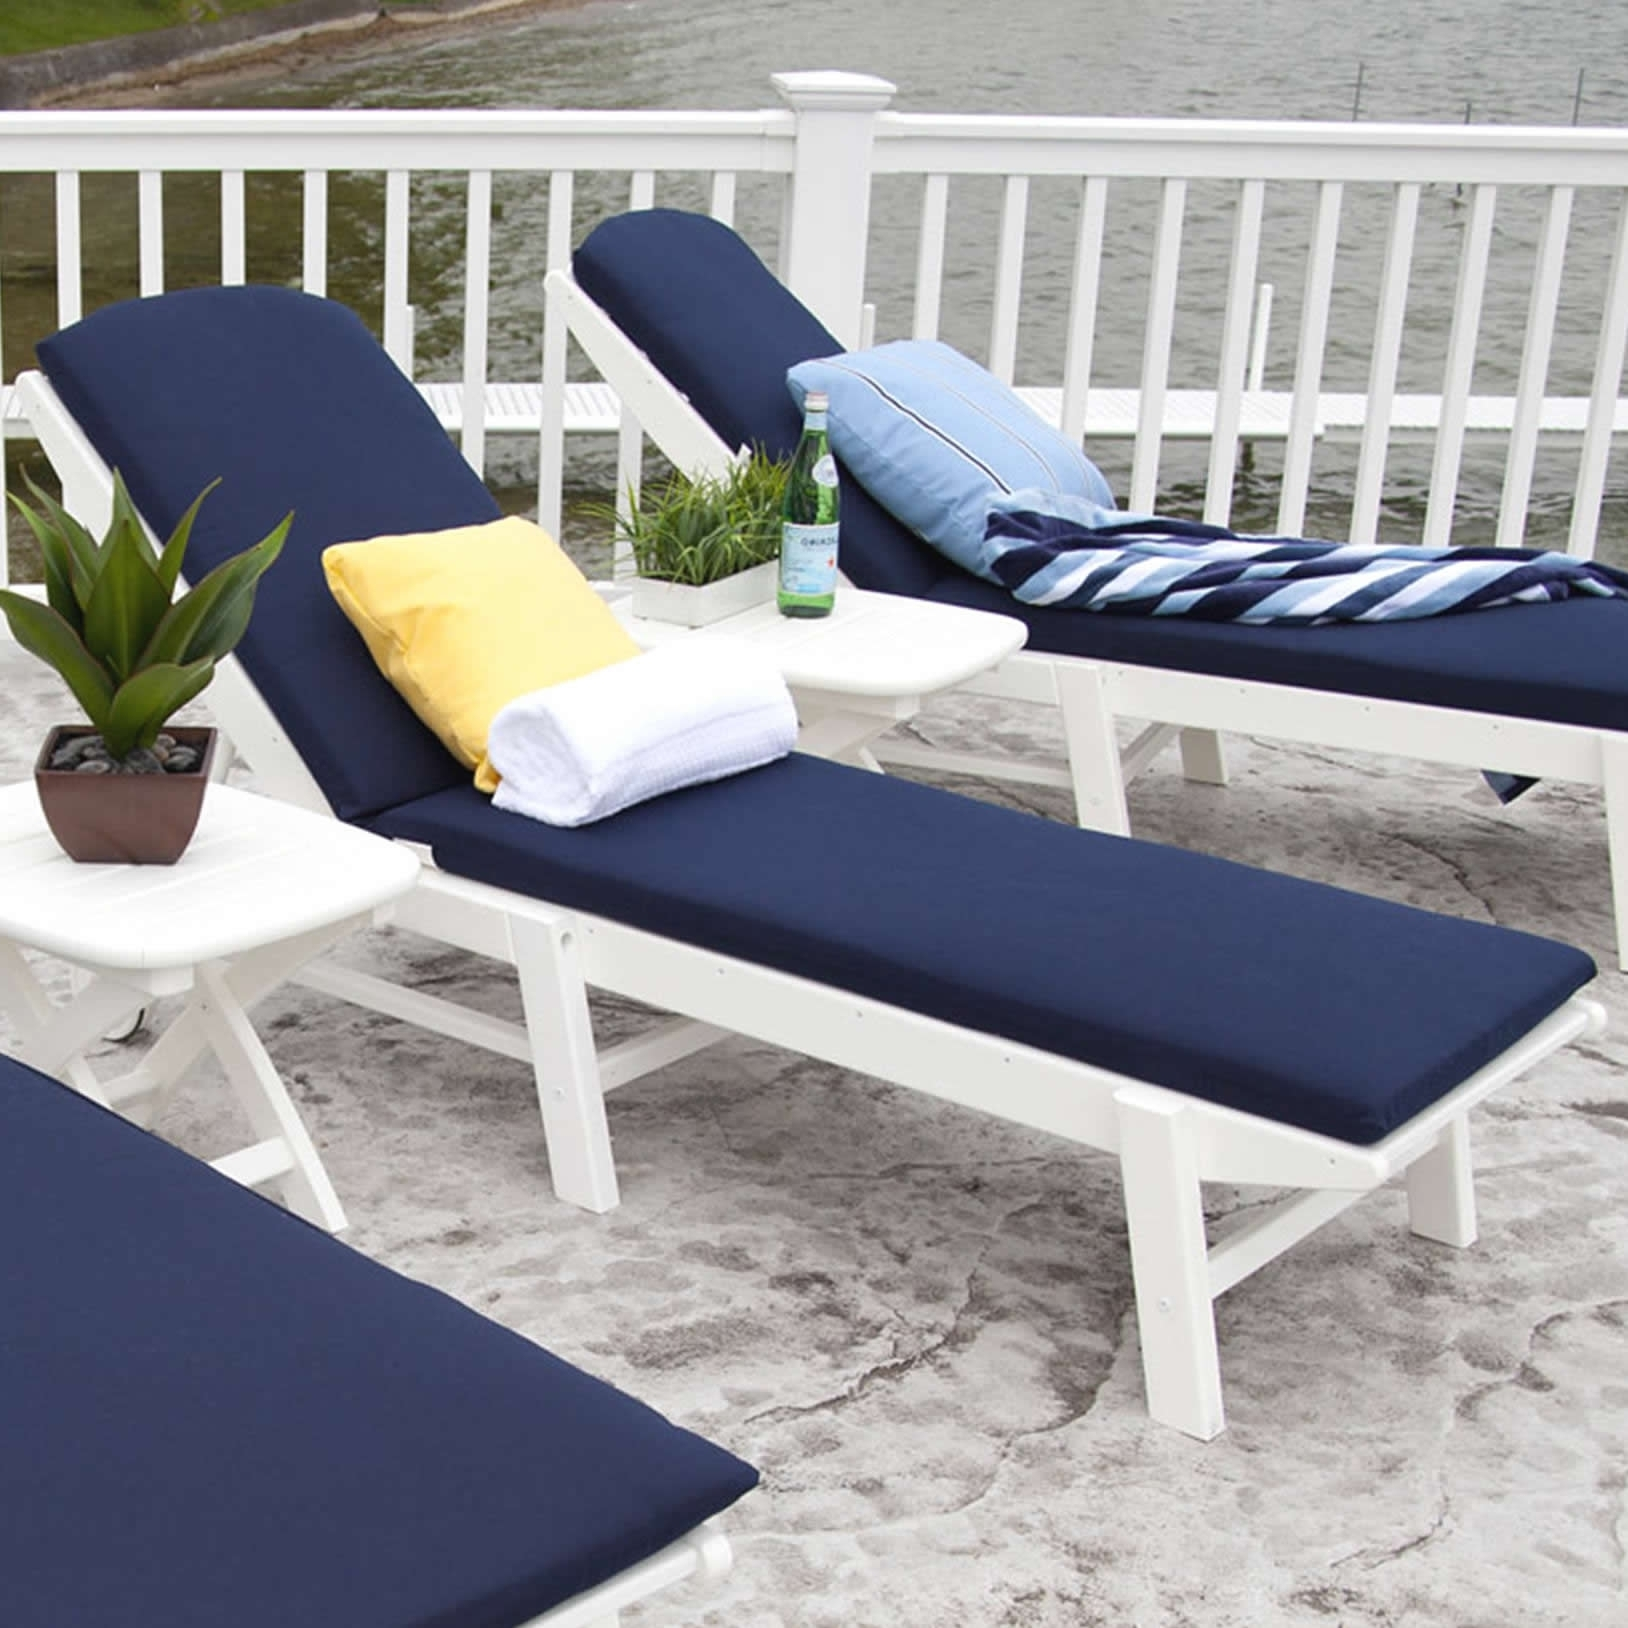 Polywood Adirondack Lounge Chairs Home Chair Designs For Outdoor Lounge Chairs With Cushions Outdoor Lounge Chairs With Cushions